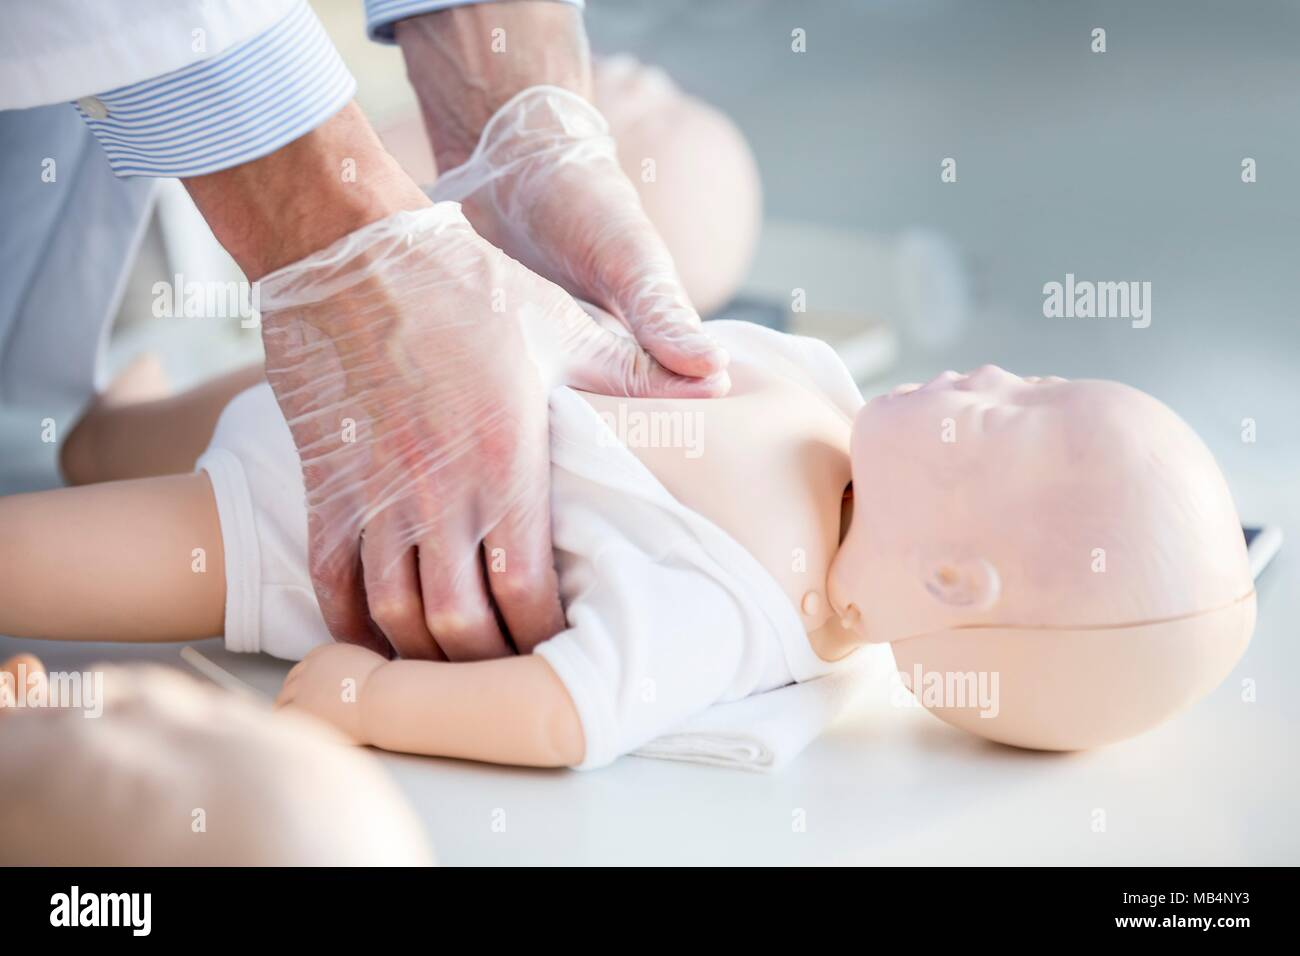 Doctor practising chest compressions on an infant CPR training dummy. - Stock Image